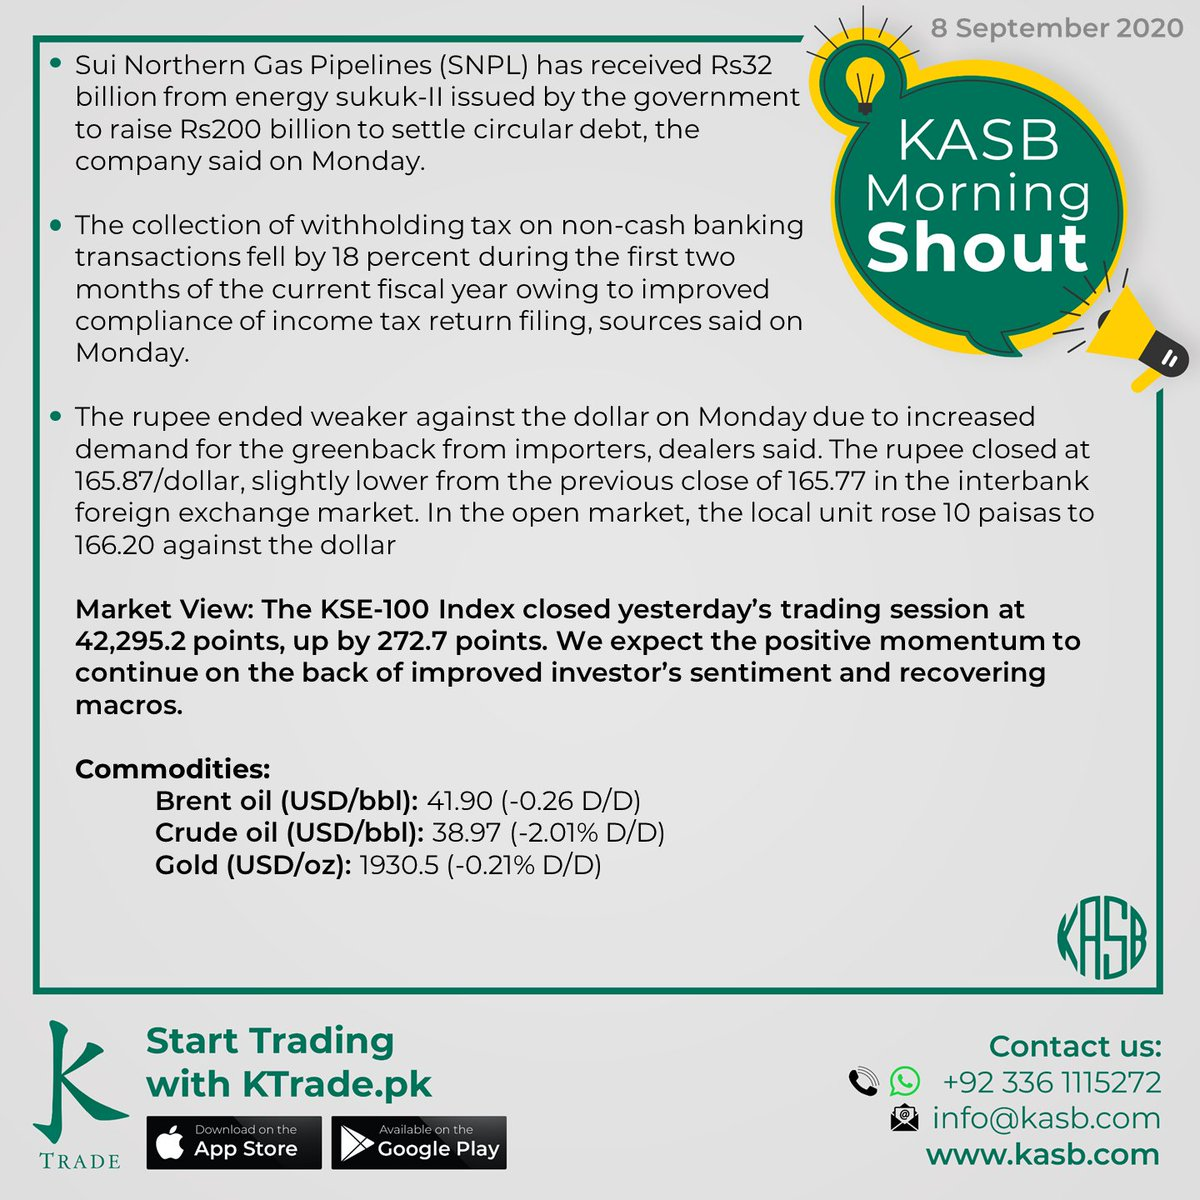 KASB Morning Shout: Our views on today's news #kasb #smartinvesting #psx #stockmarket #KTrade #onlinetrading #pakistaneconomy #imrankhan #sbp #inflation #kse100 #brokeragehouse #psxstocks #marketupdate #emergingmarkets #frontiermarkets #news #morning #today #views https://t.co/q8p0RarlO3